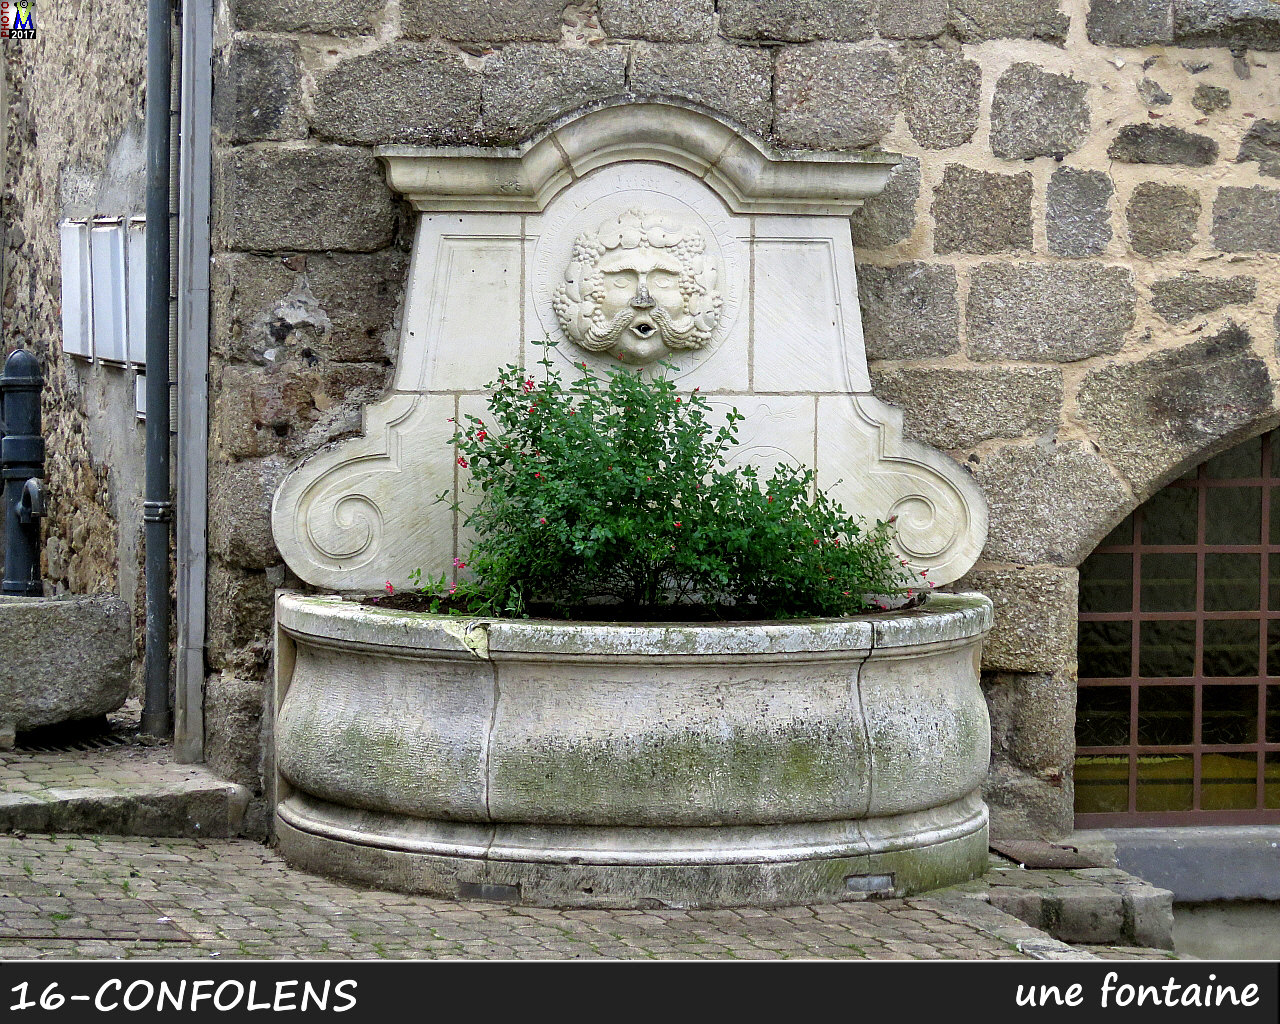 16CONFOLENS_fontaine_1010.jpg